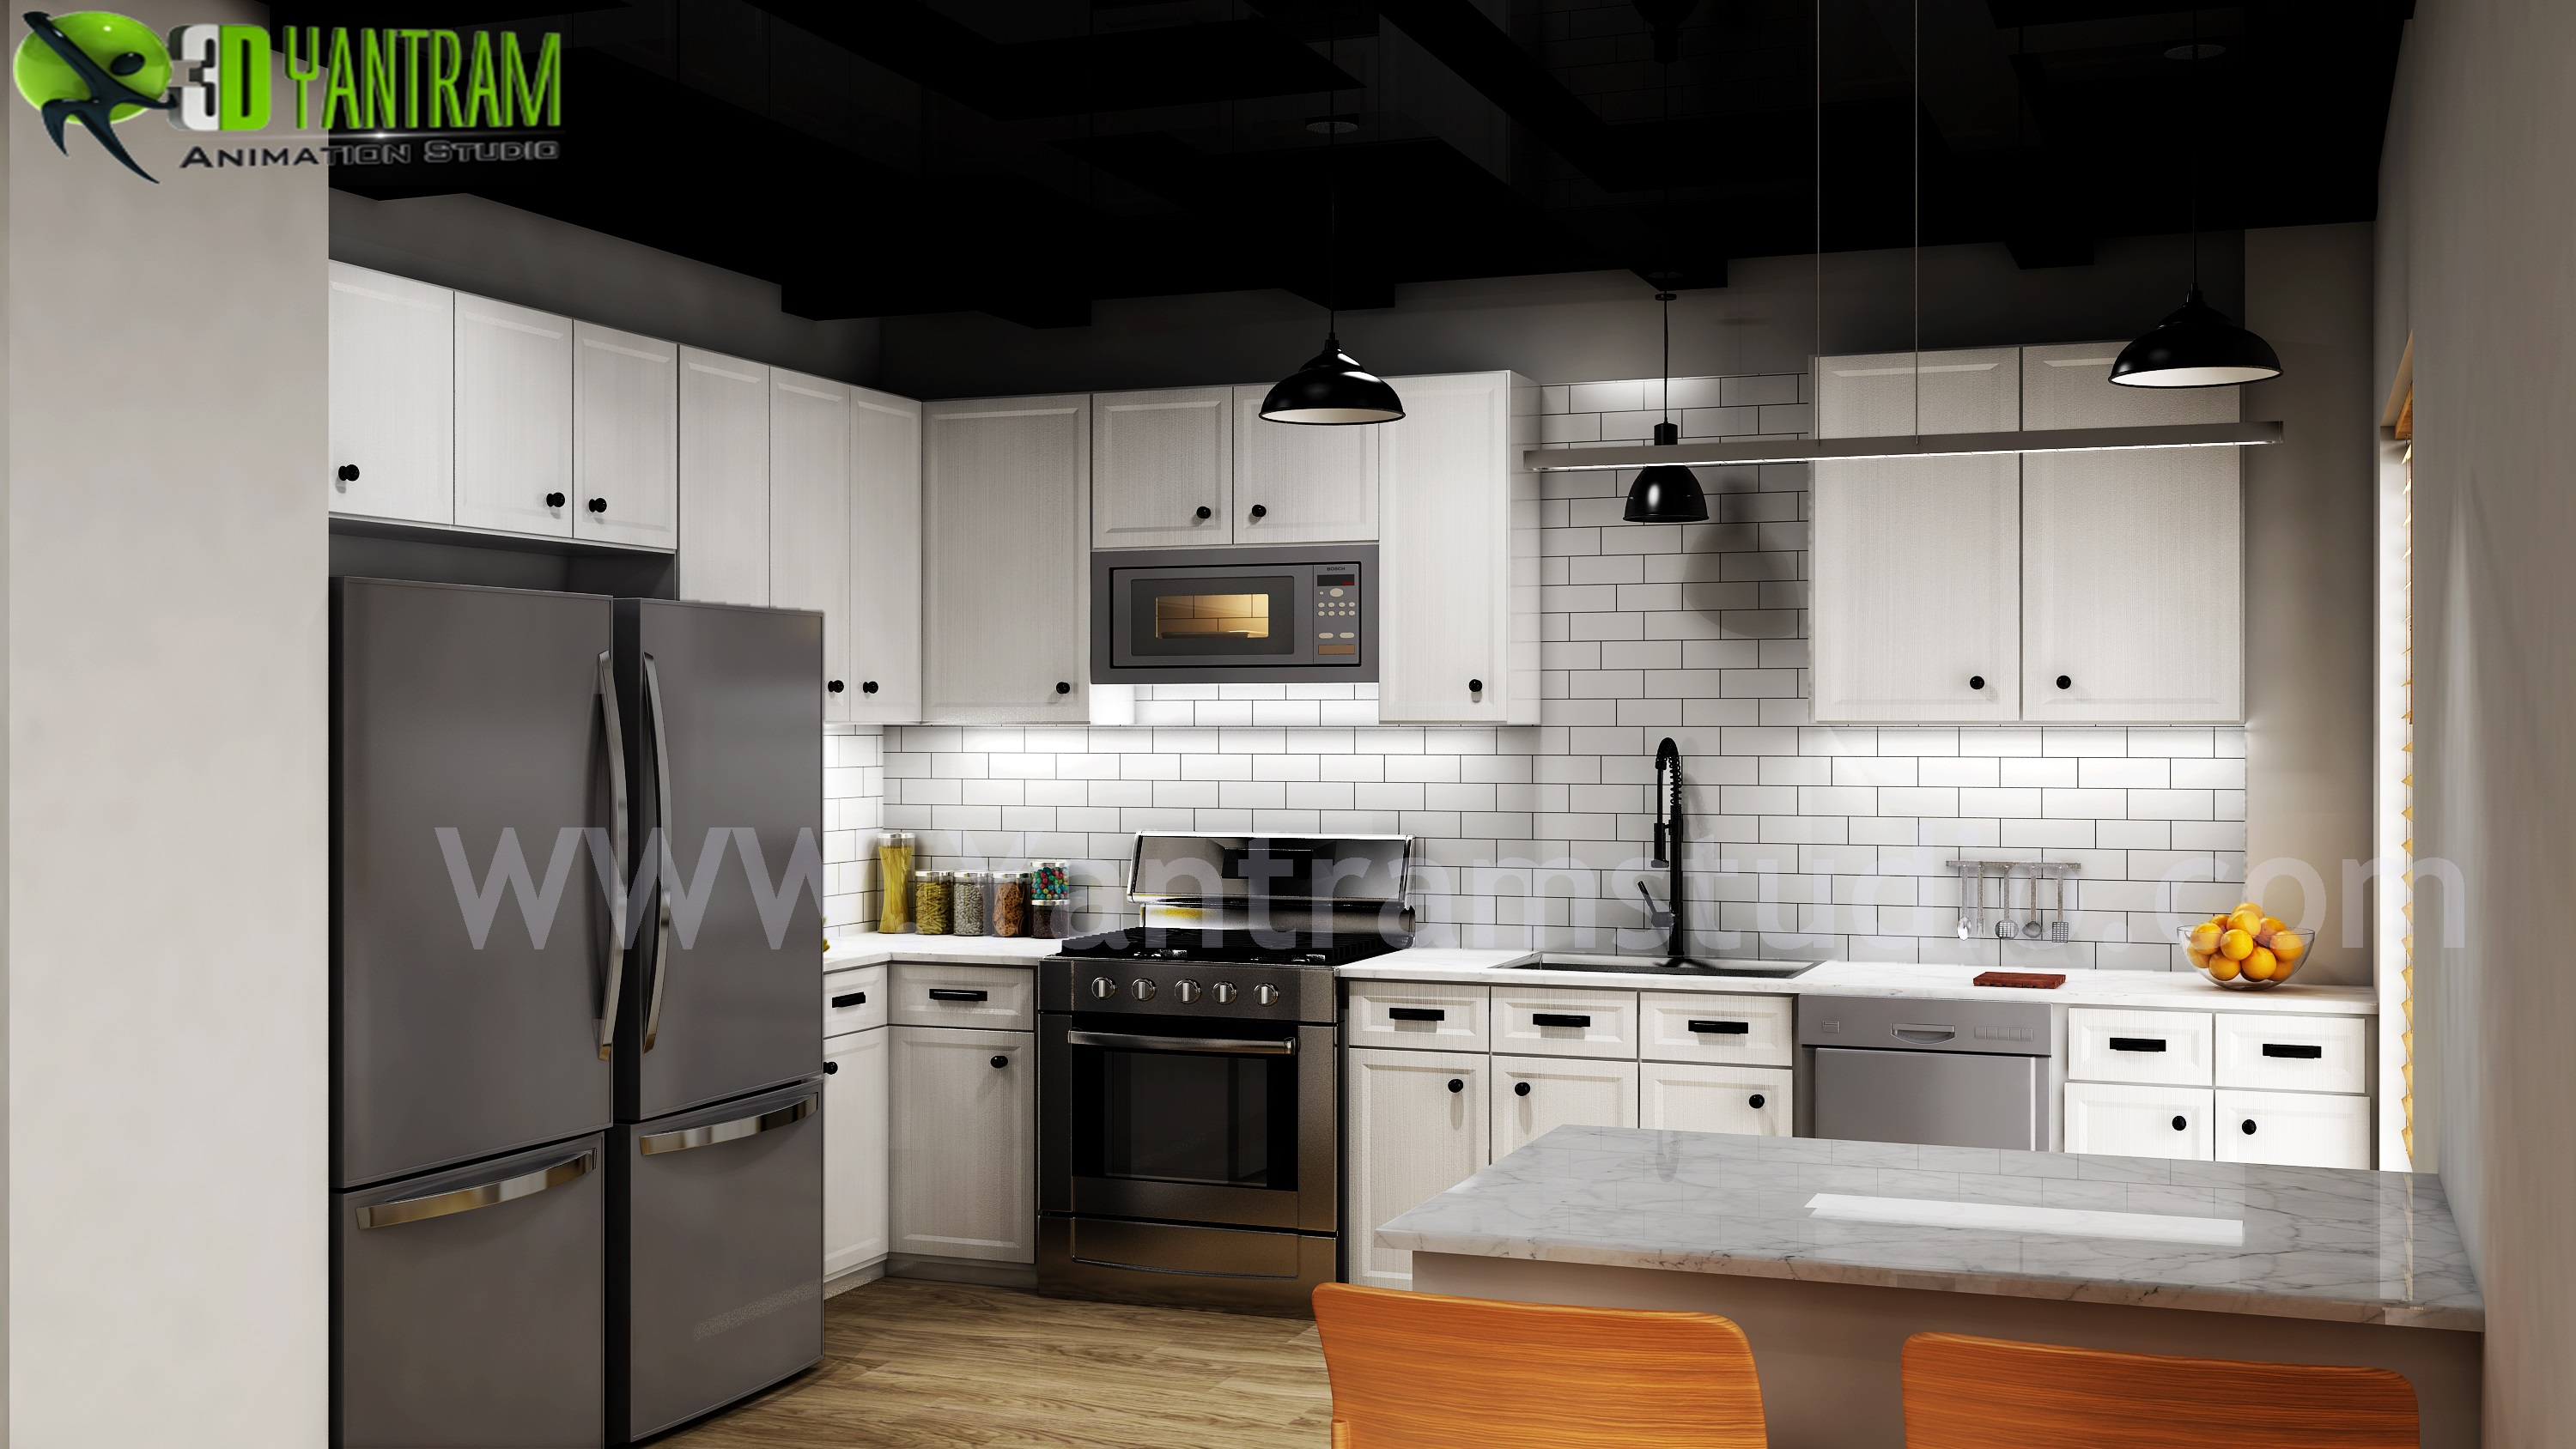 Modern Small Kitchen Design Ideas by Yantram 3d Interior Rendering Services - Berlin, Germany - Kitchen design ideas, inspiration, and decor from around the globe for your modern home.